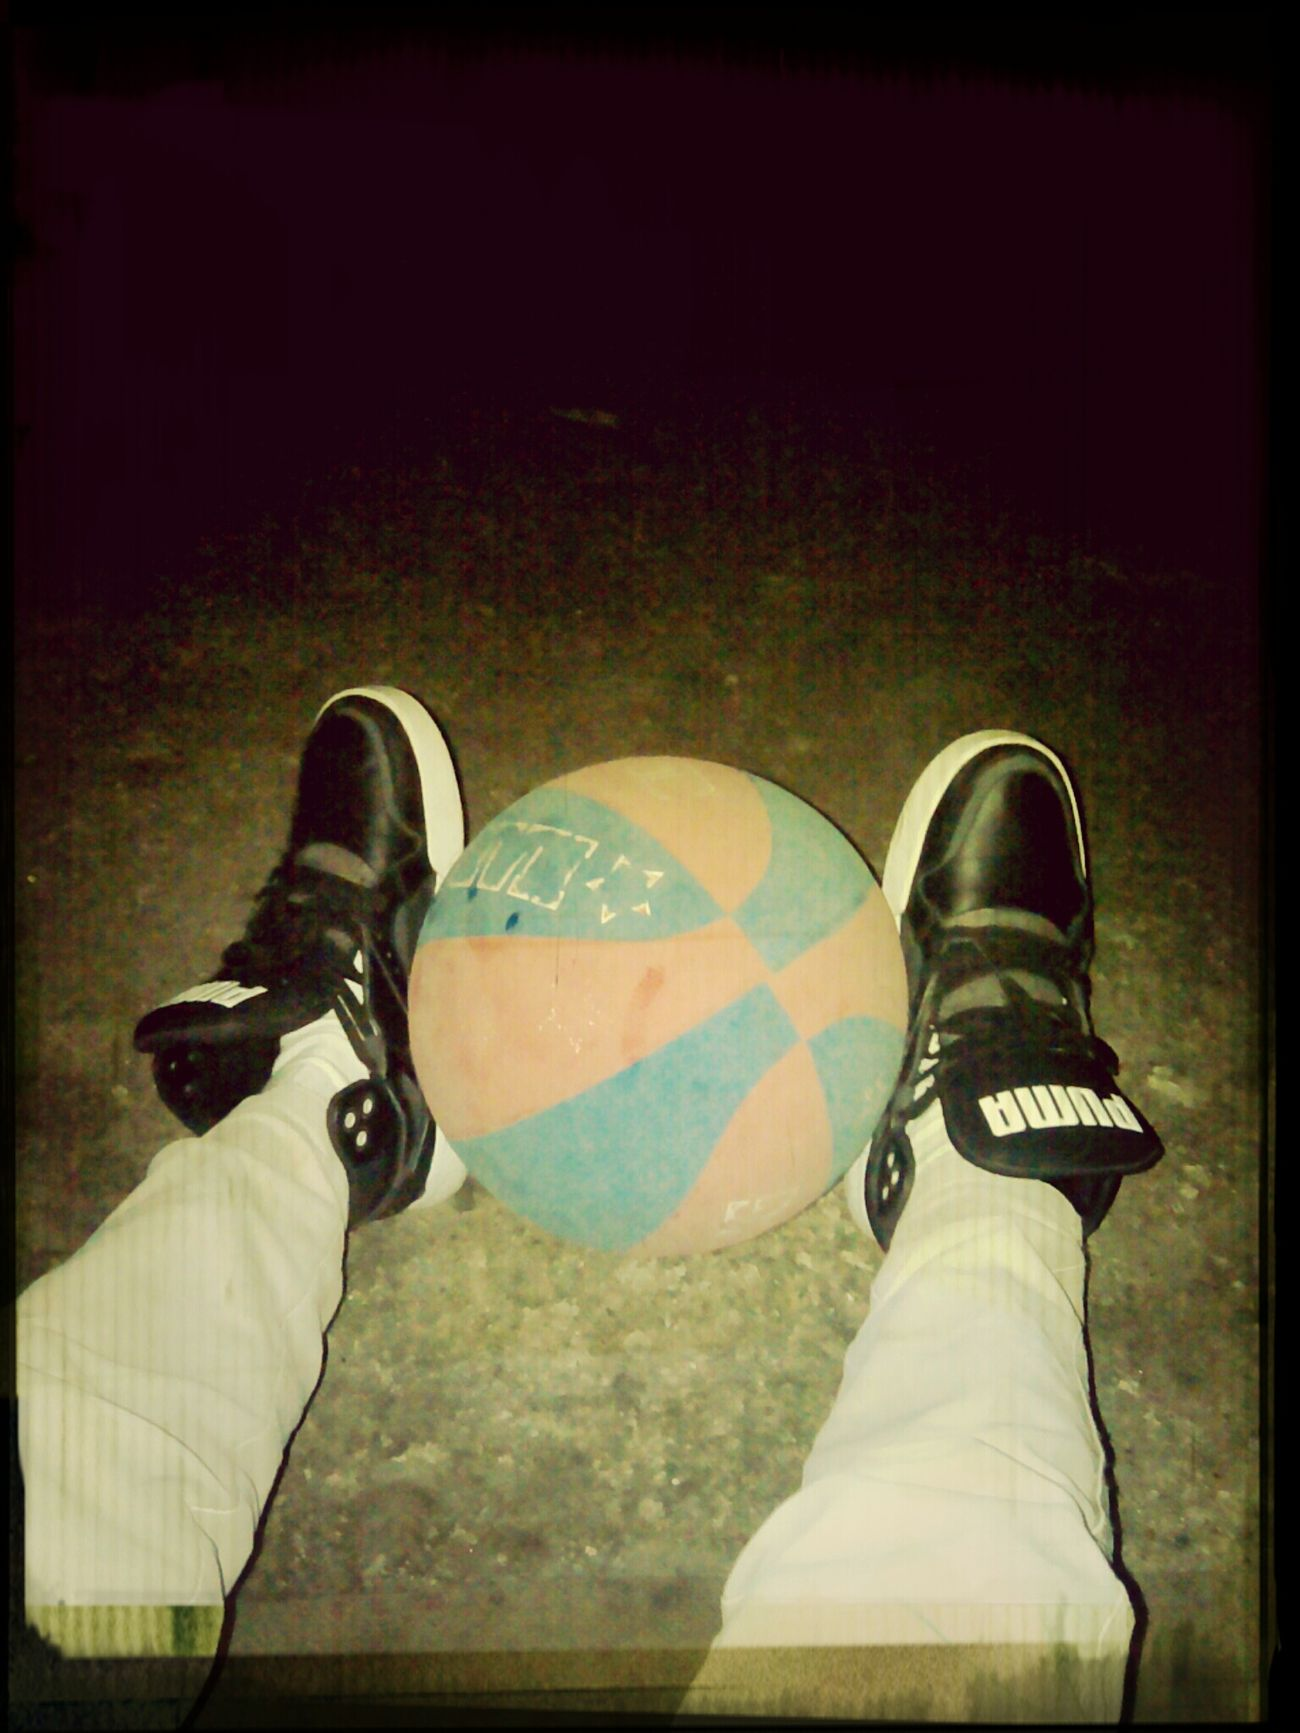 From My Point Of View . Playing basketball at night. Gives me the greatest feeling of not being alone.